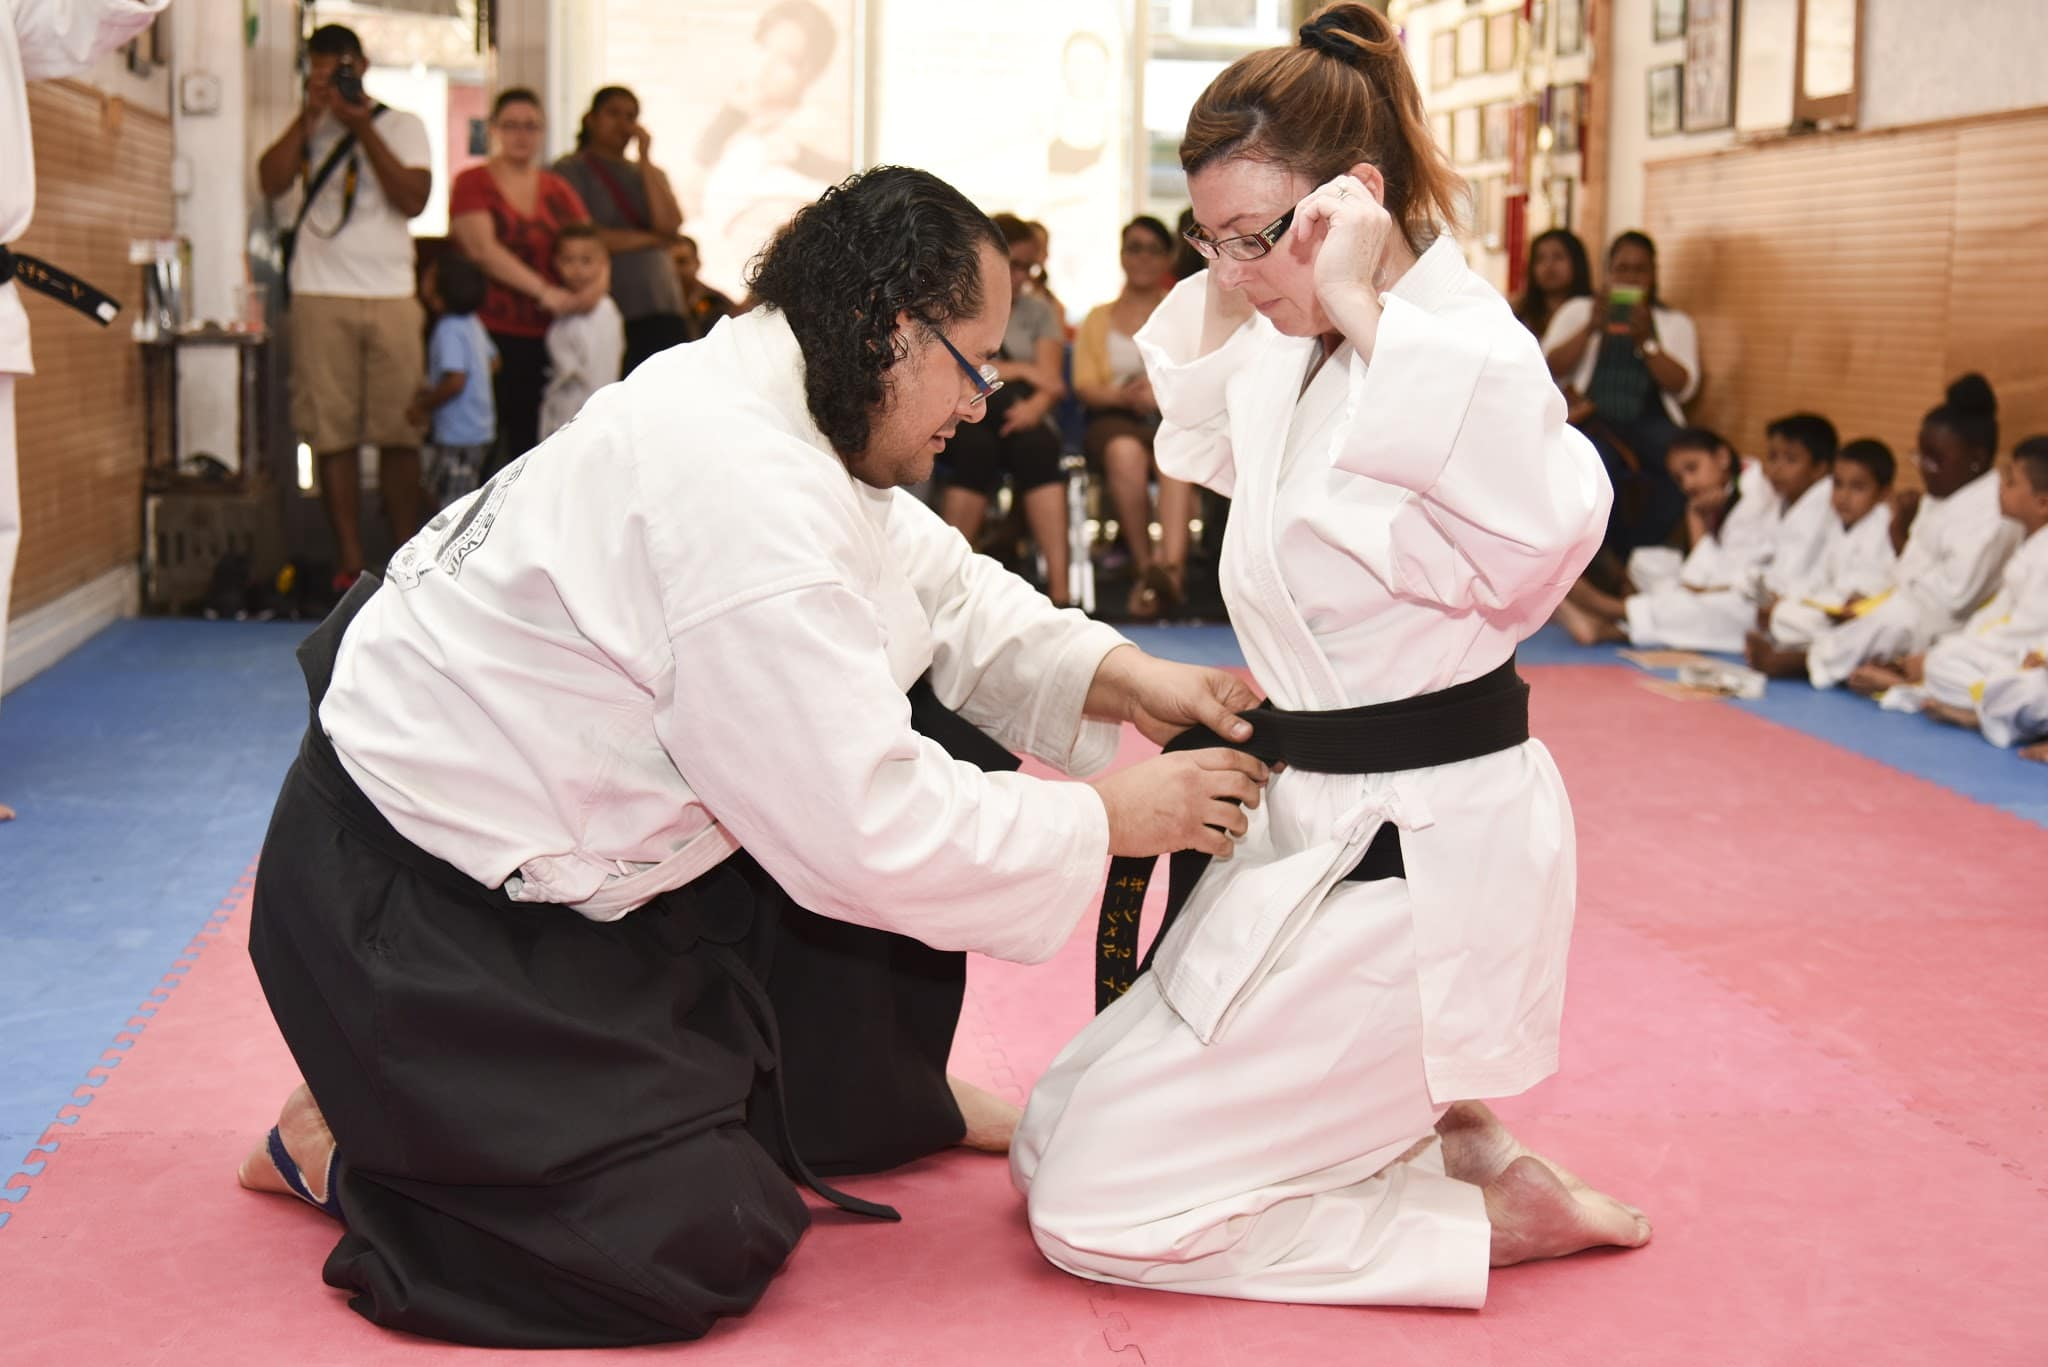 Black belt ceremony conducted by the World Fighting Martial Arts Federation